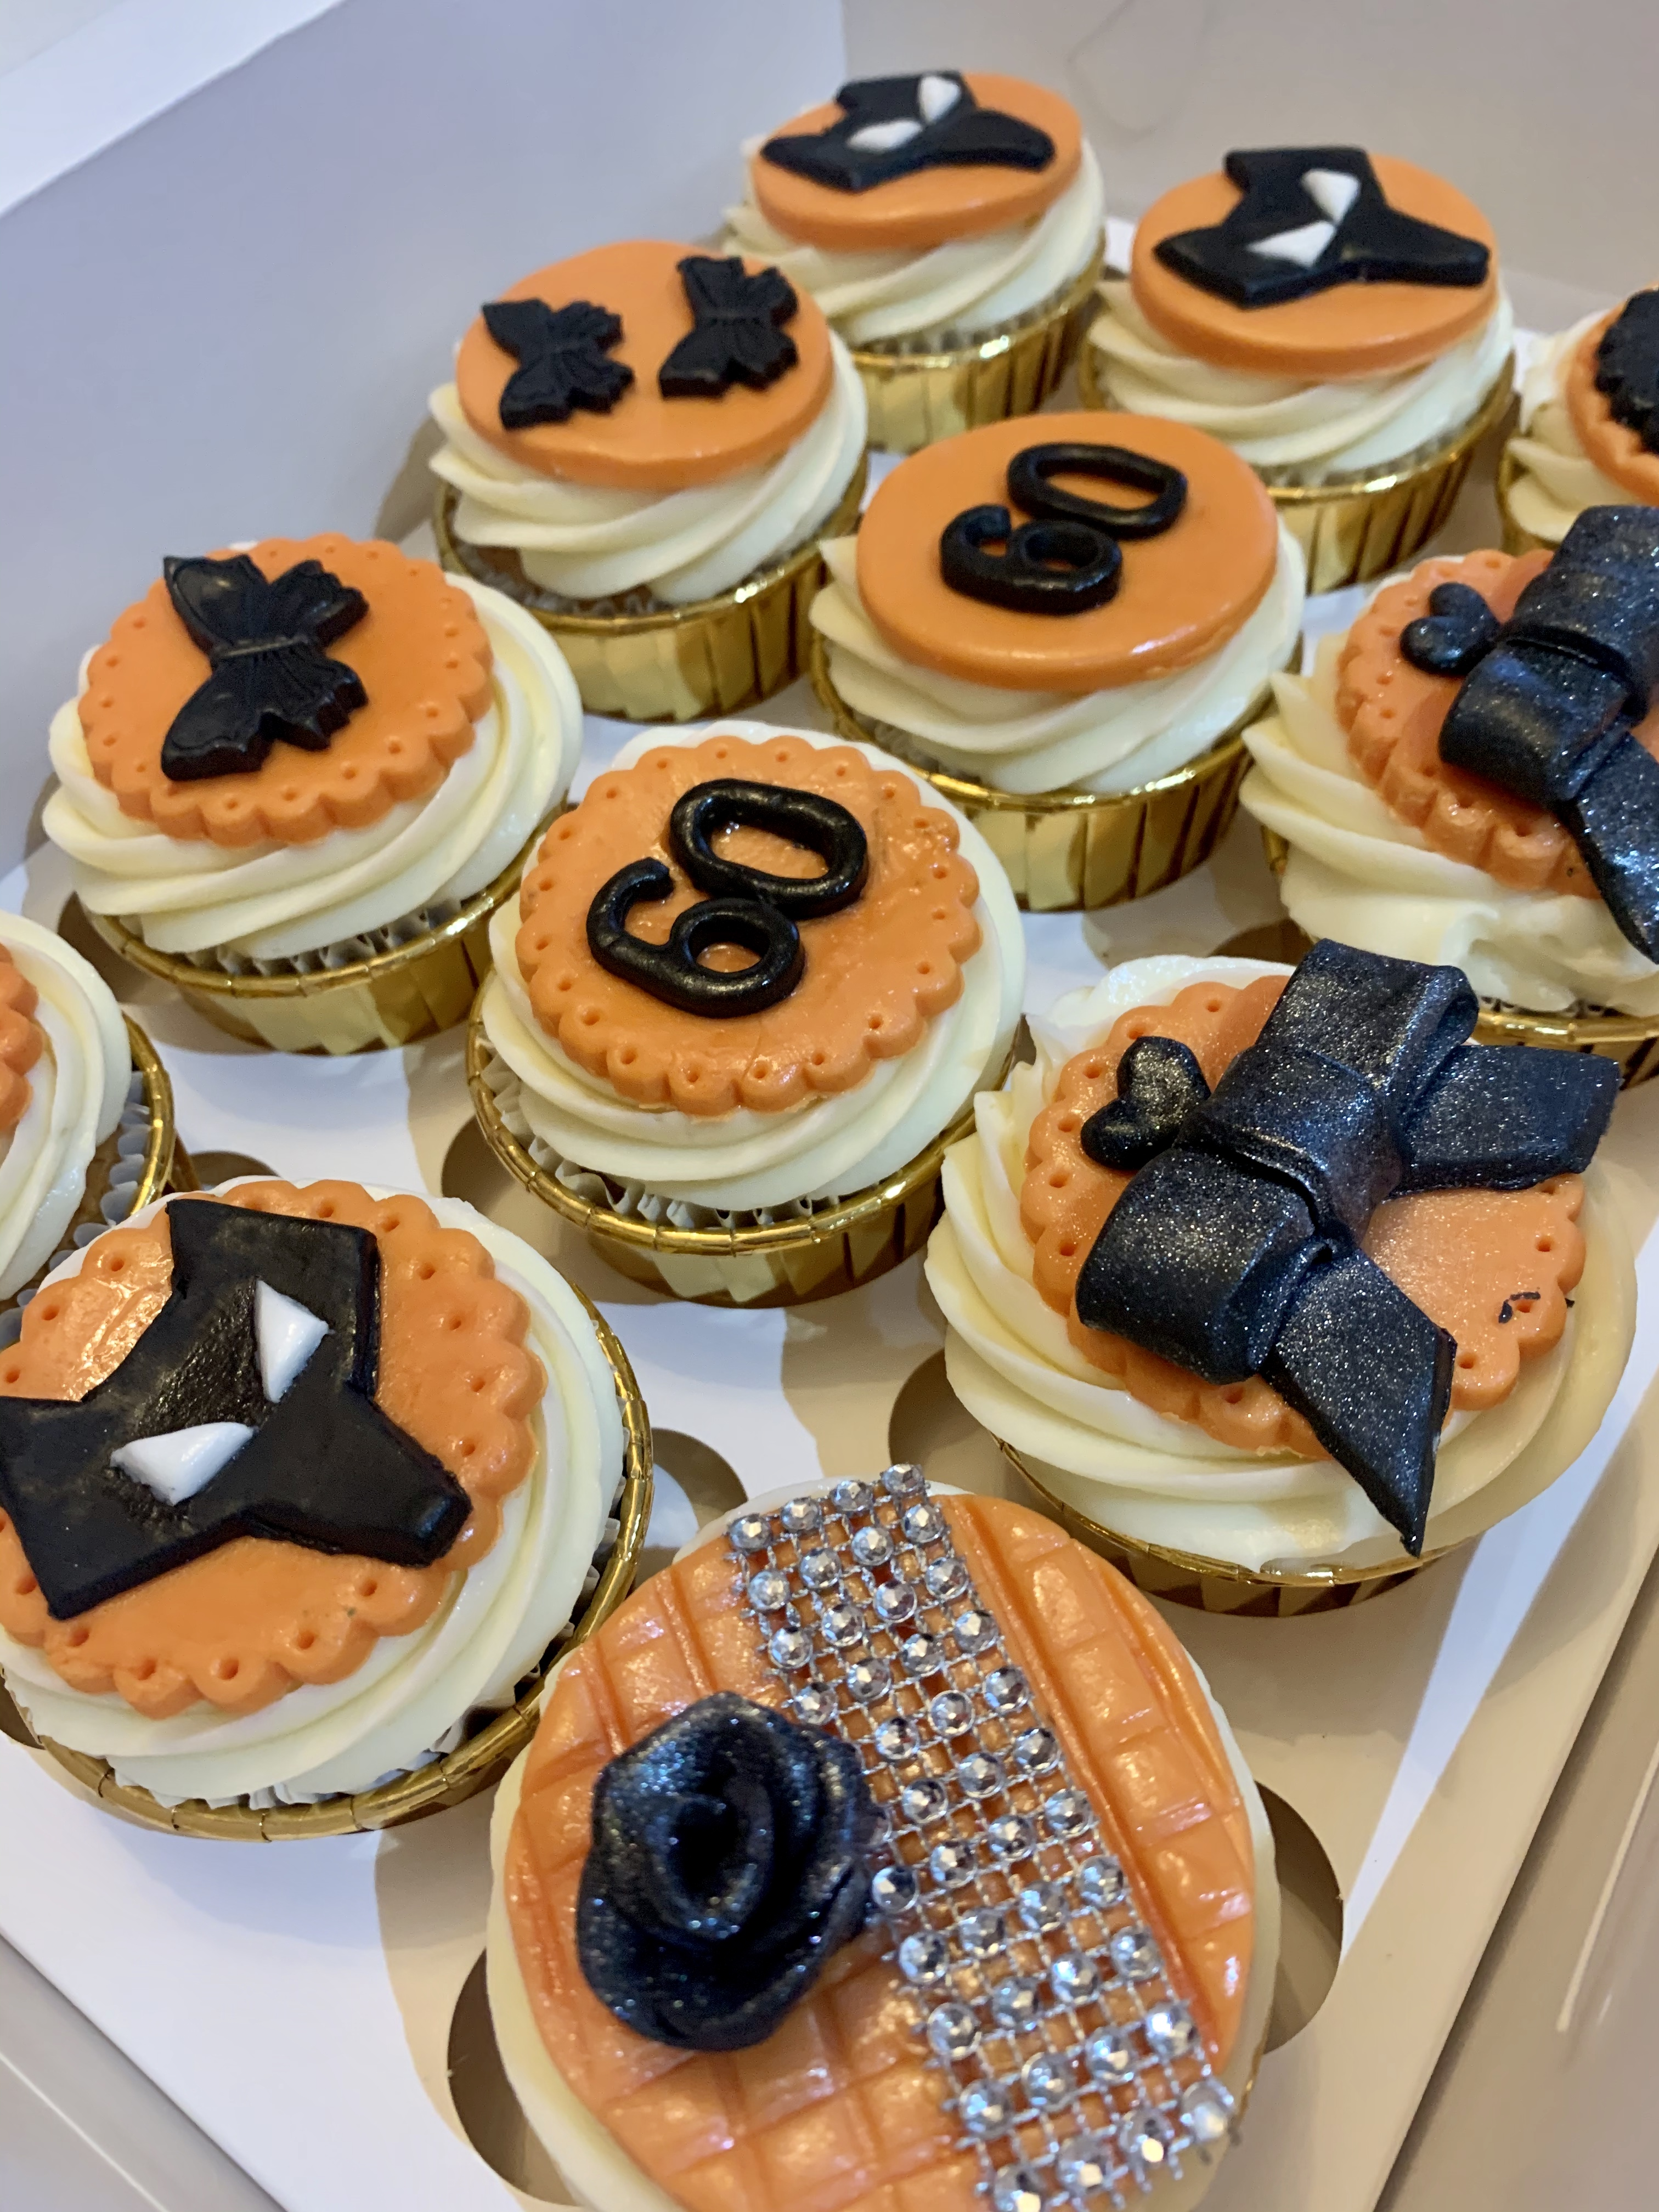 5.Wolves FC Themed Cupcakes